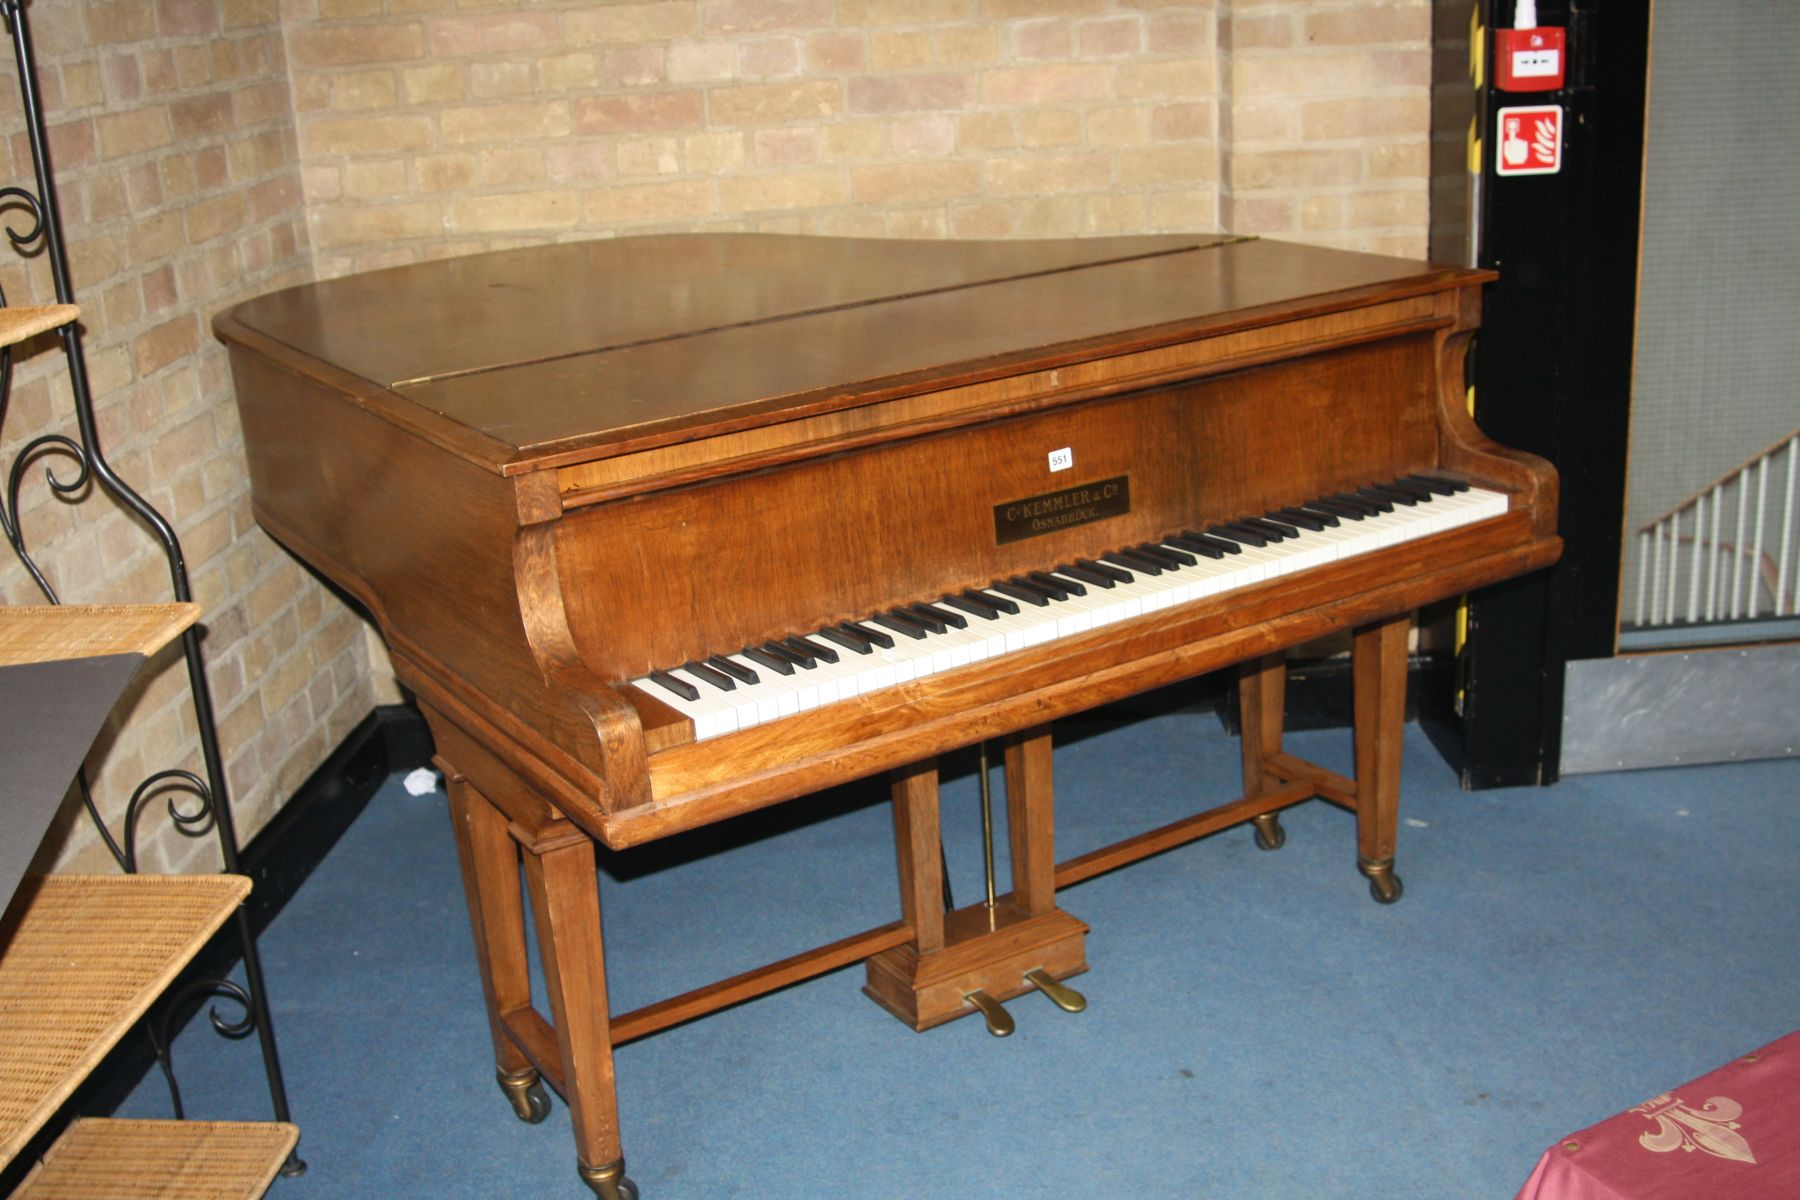 Lot 551 - A C. KEMMLER & CO OF OSNABRUCK BABY GRAND PIANO, in a walnut case with a pine stool, 141cm wide